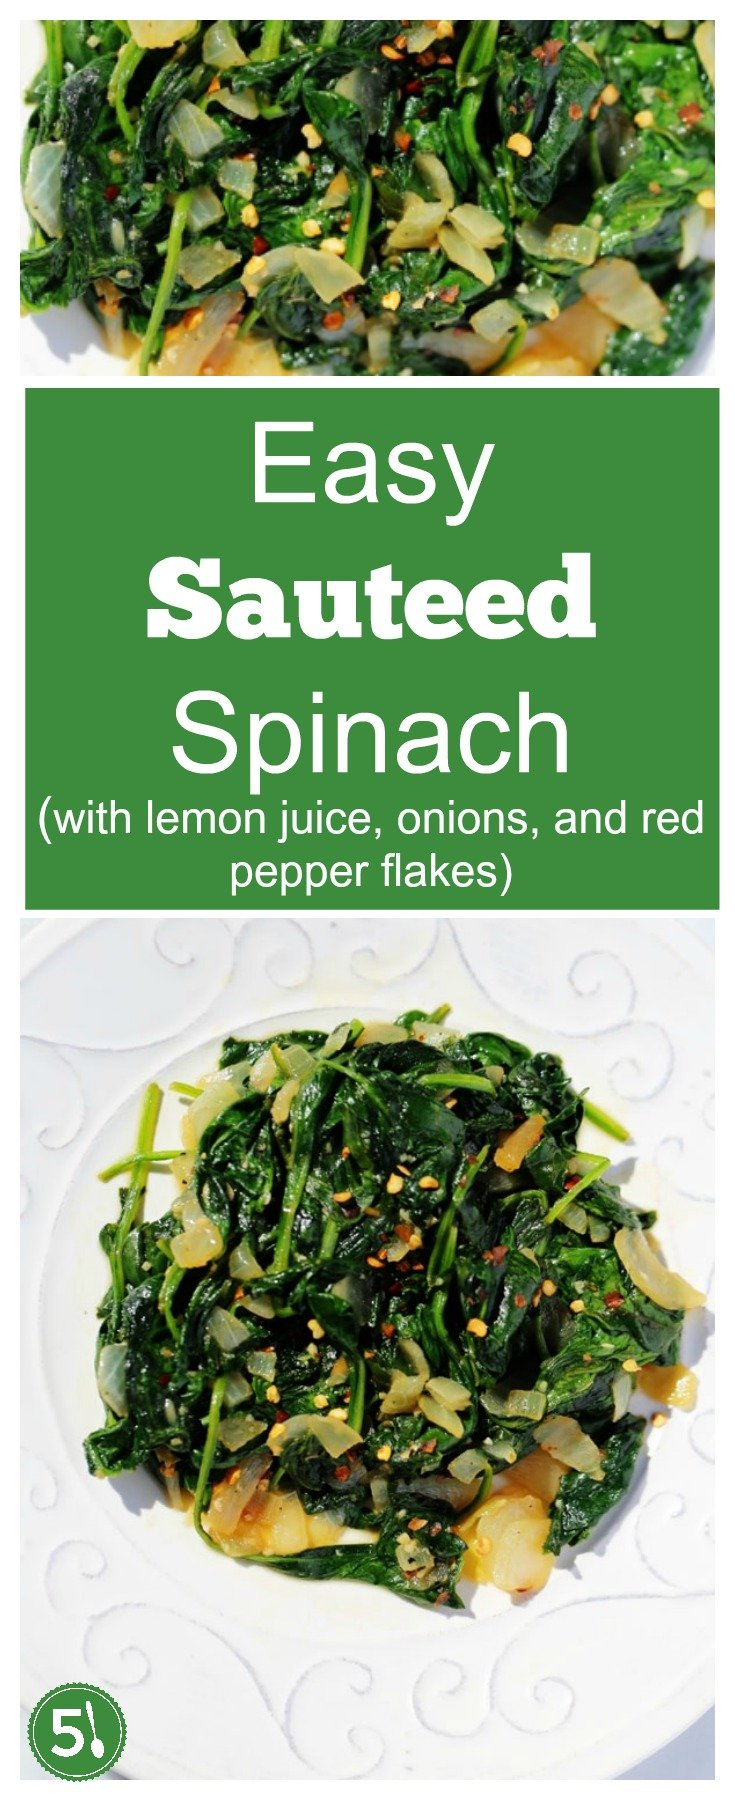 Easy and healthy sauteed spinach with olive oil, butter, chopped white onion, garlic, fresh lemon juice, and red pepper flakes. So good.